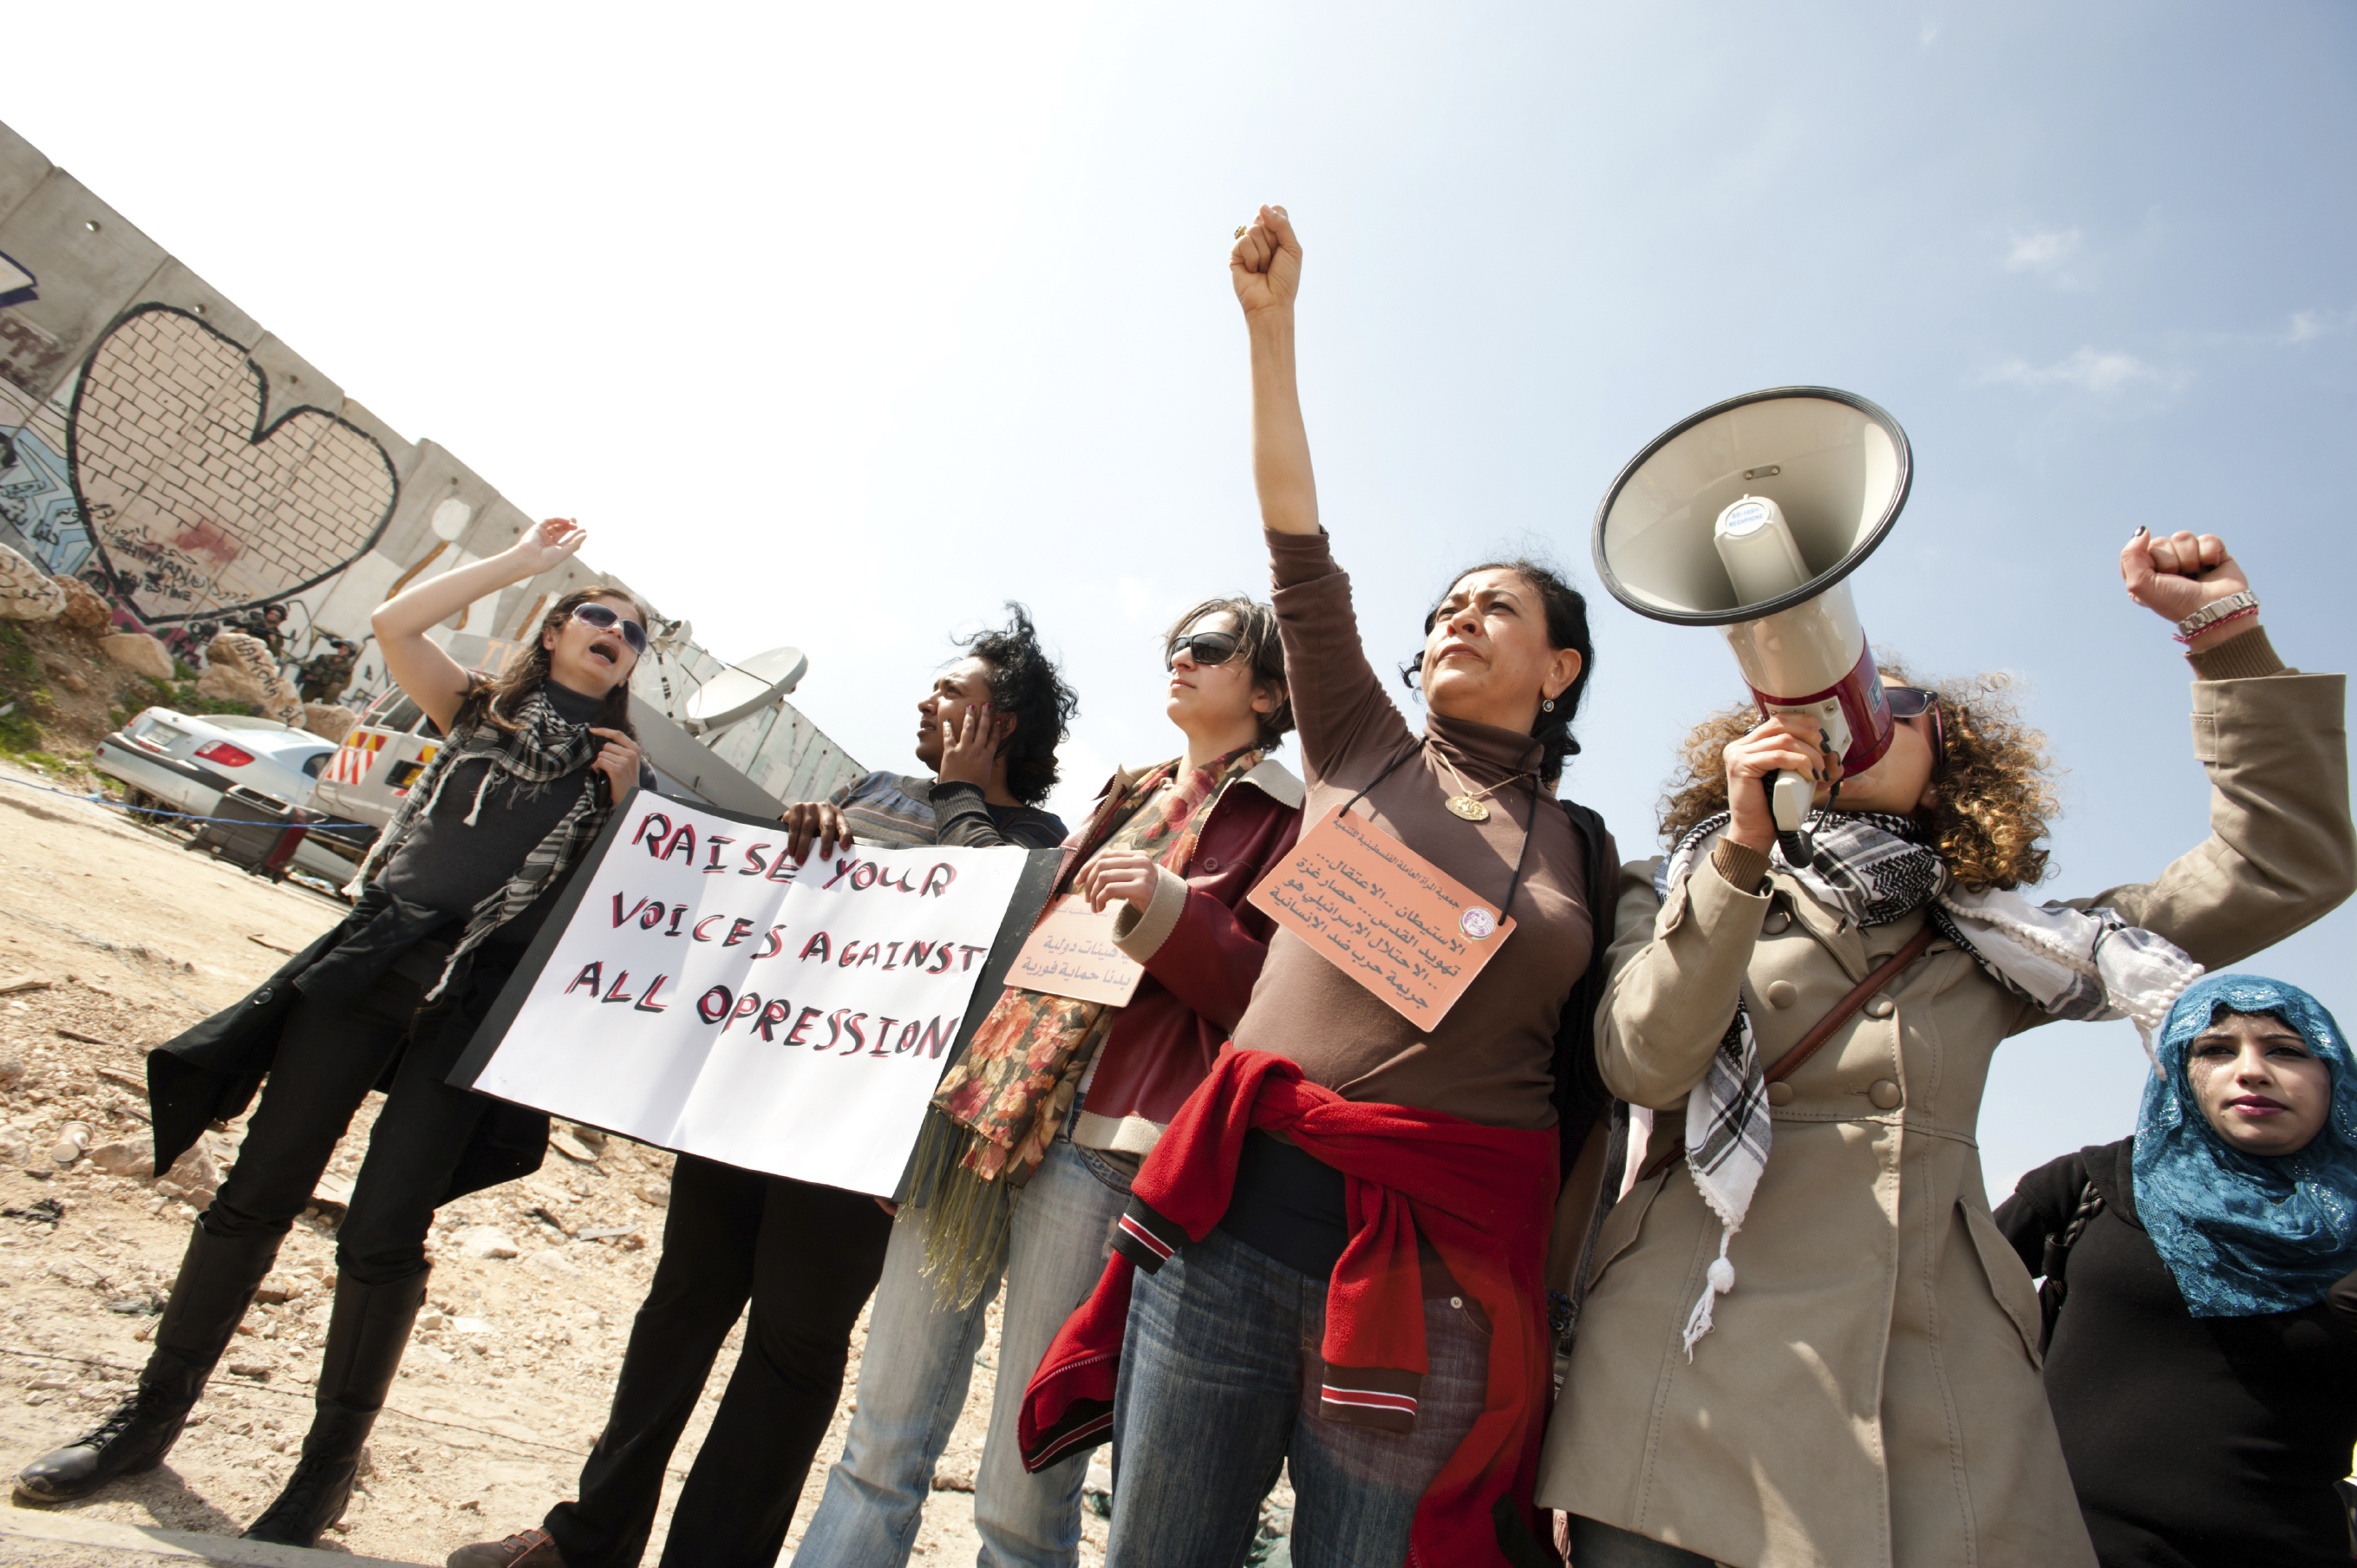 The Solidarity of the Women's Movement: WILPF Spain's ...